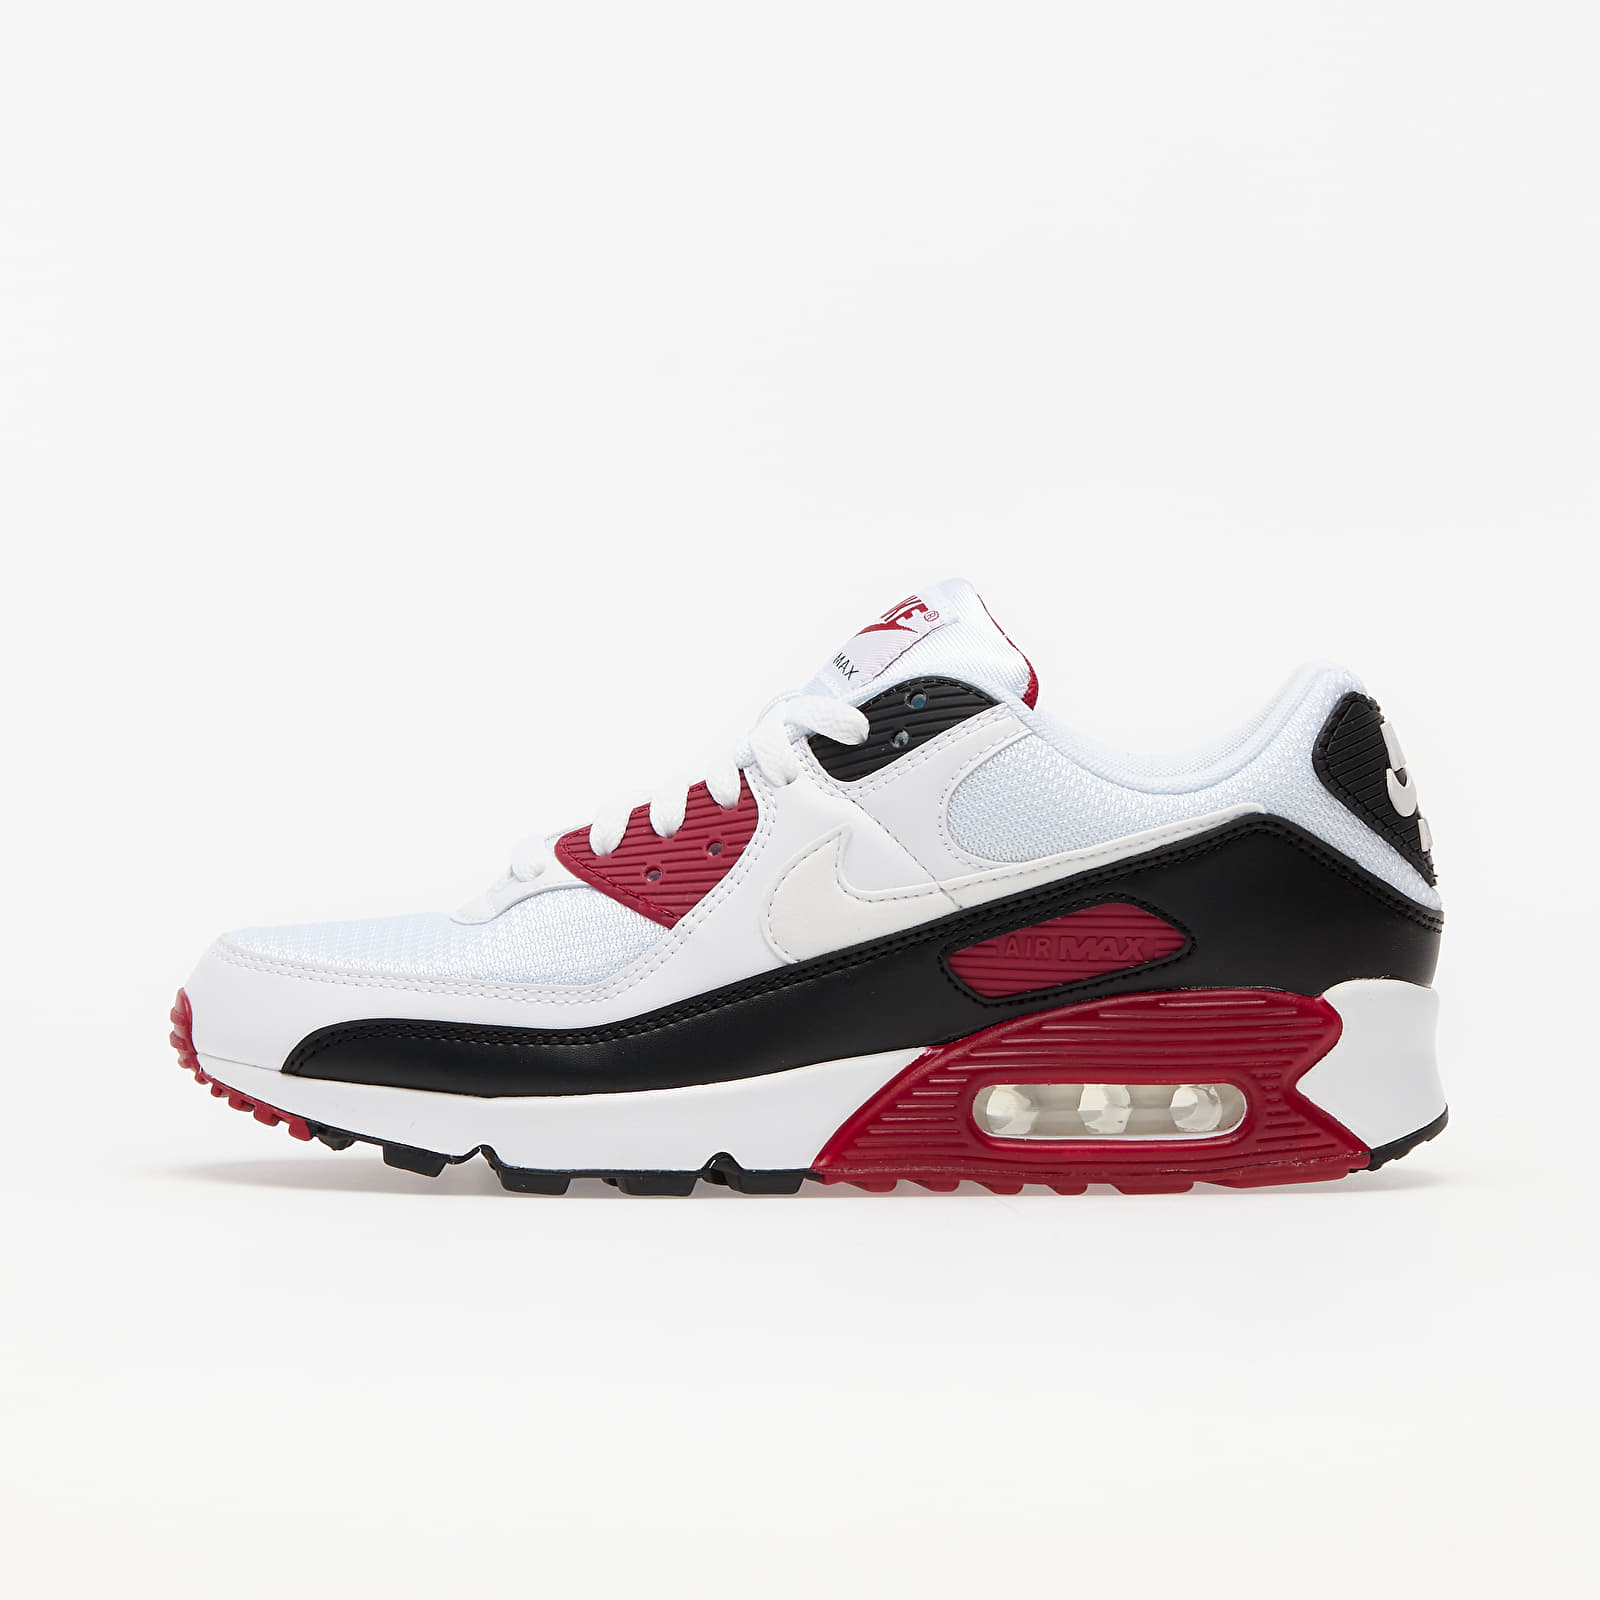 Men's shoes Nike Air Max 90 White/ White-New Maroon-Black